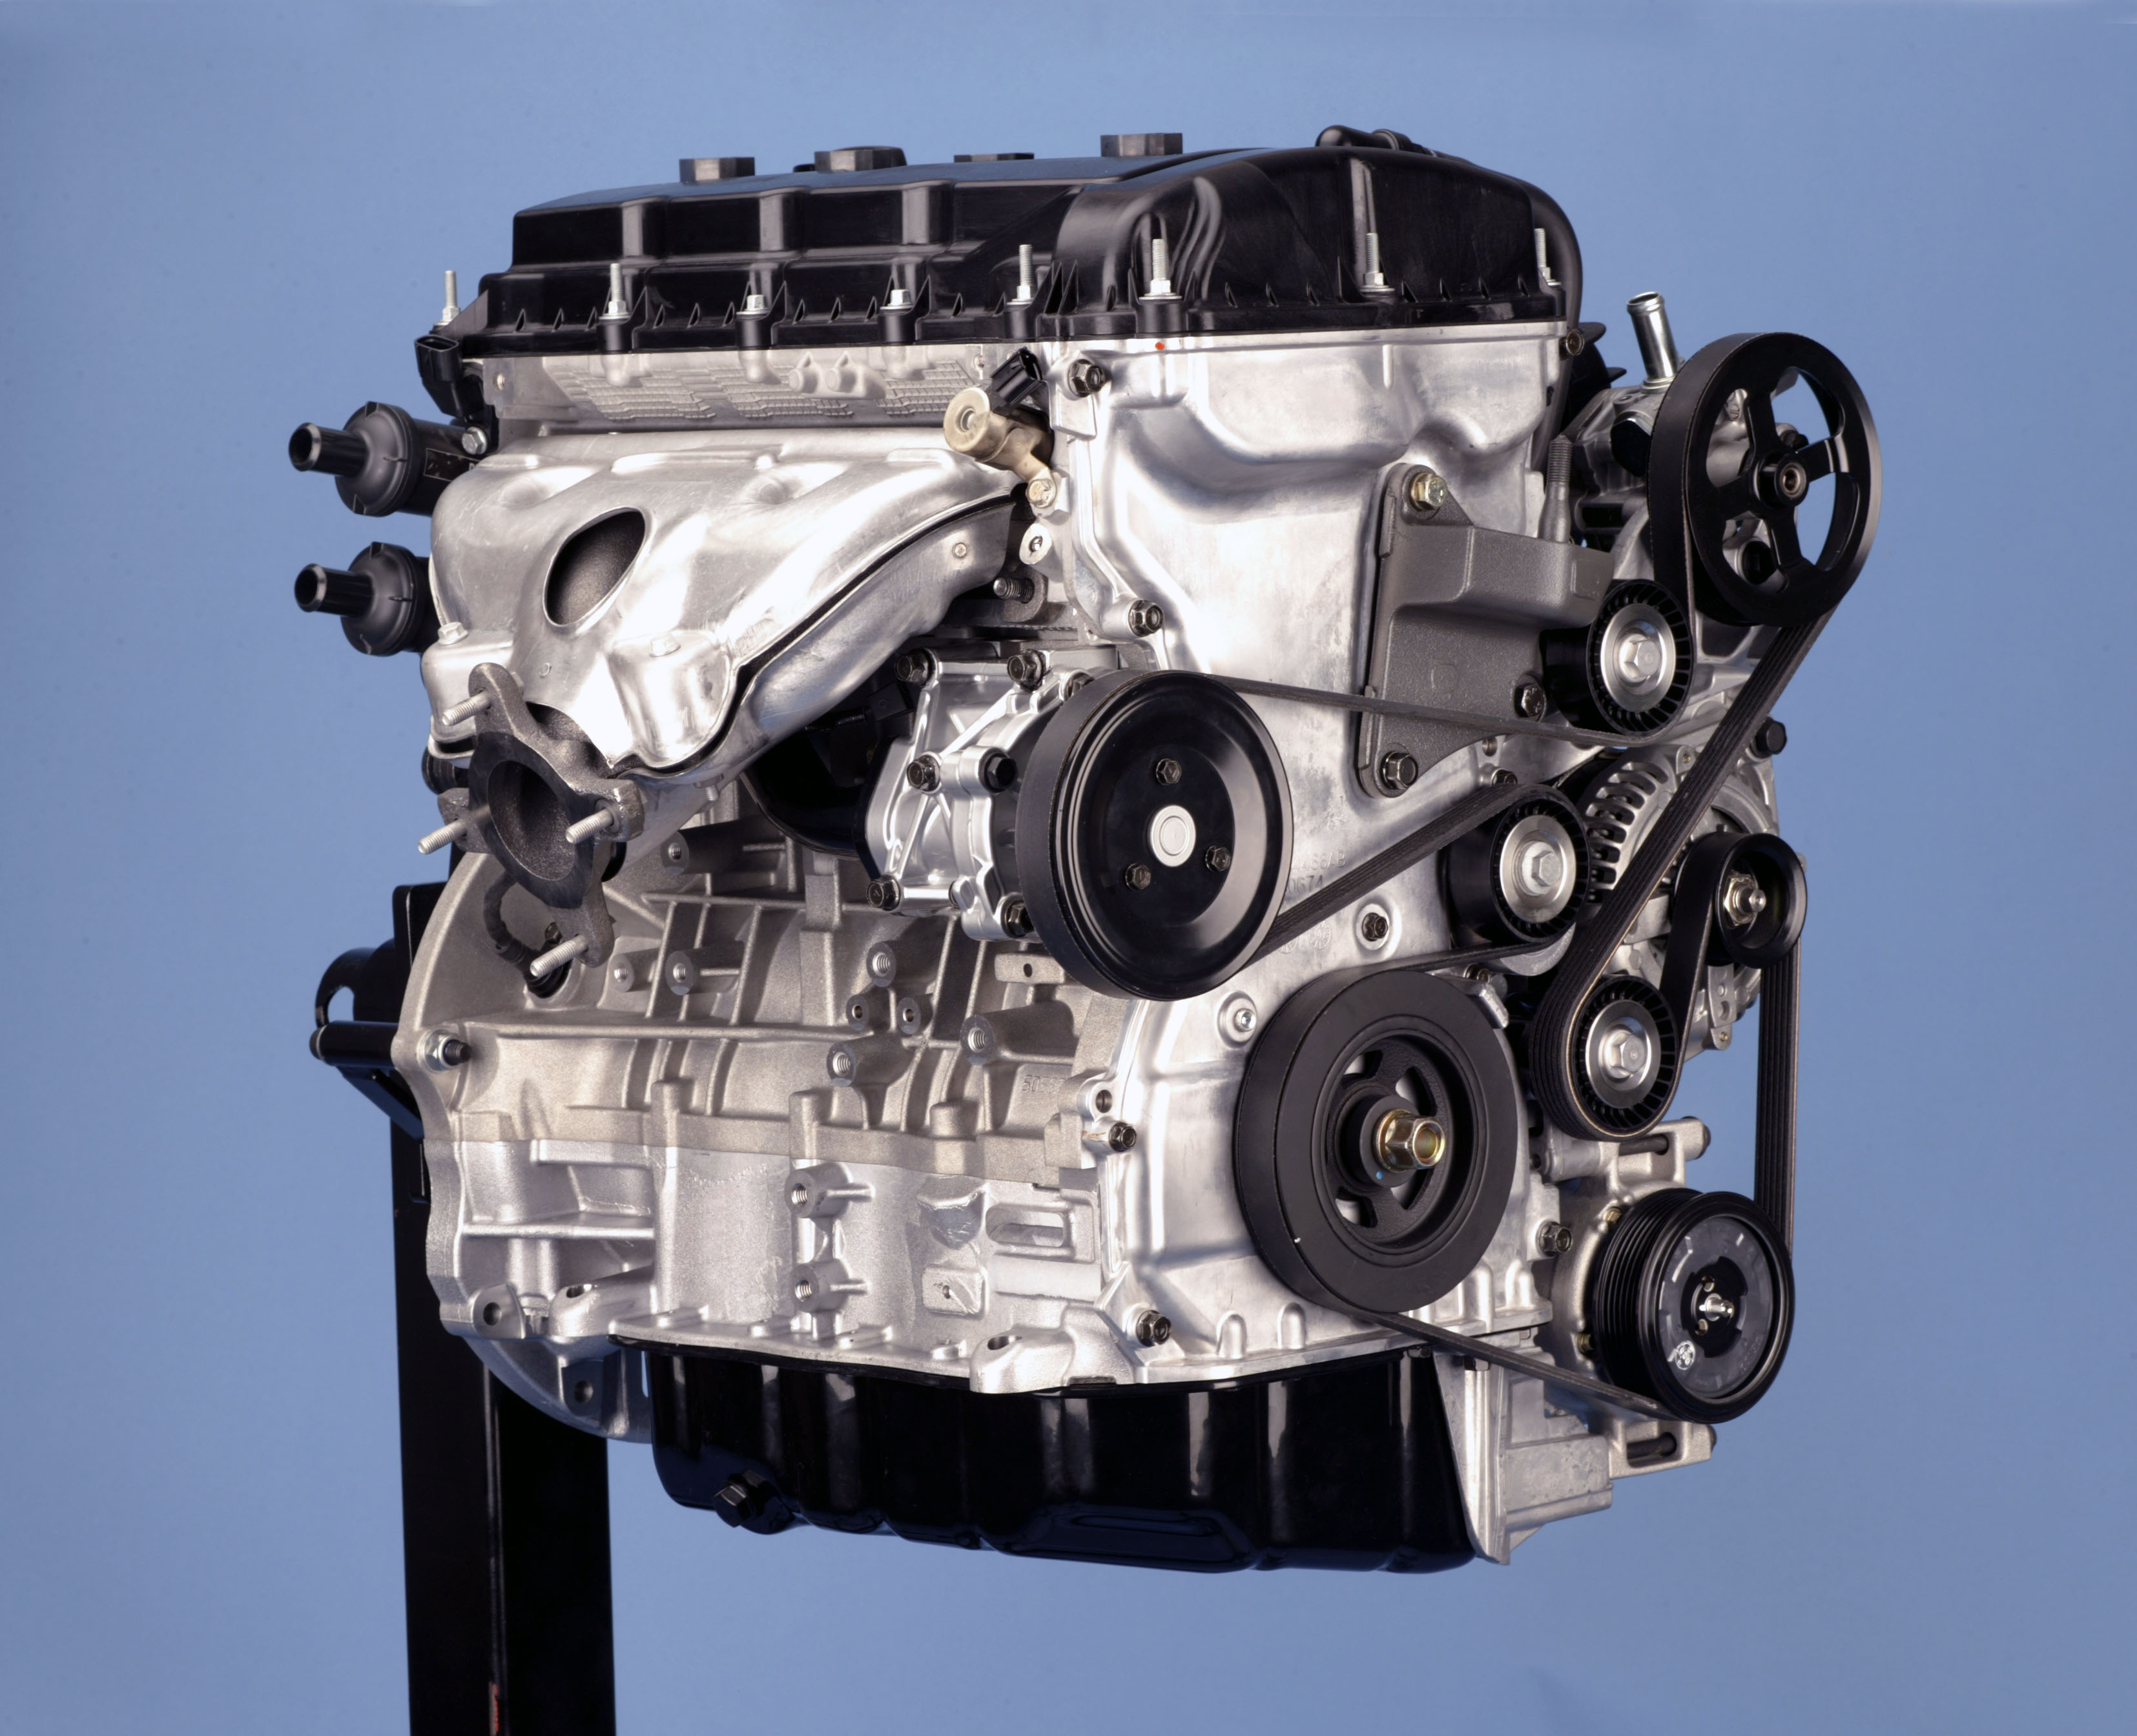 Srt 4 Engine Diagram On Motor Trusted Wiring Srt4 Timing Belt Dodge Caliber Powertrain Top Speed Rh Topspeed Com Specs